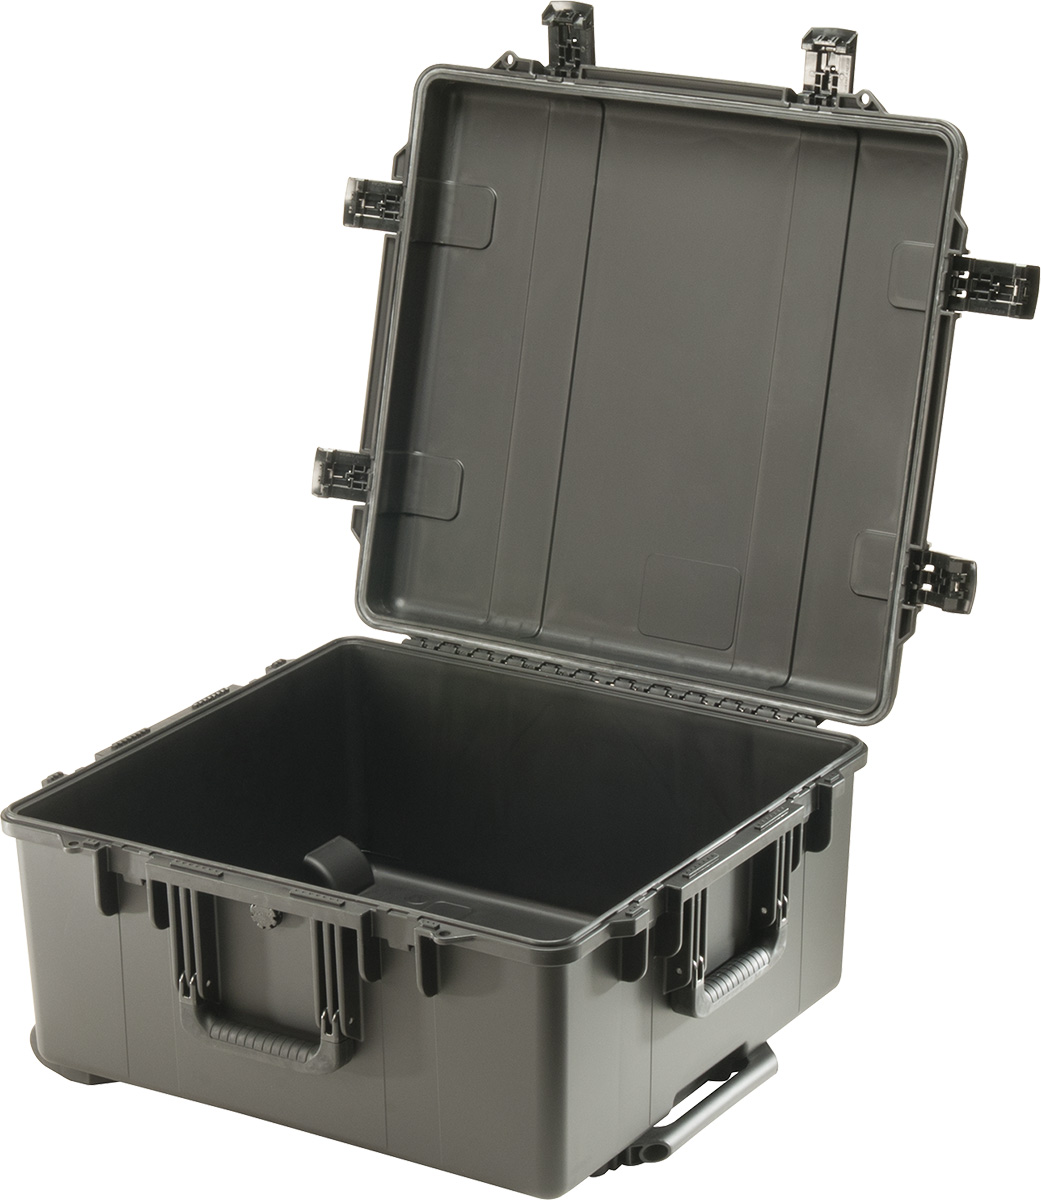 pelican im2875 pelican im2875 watertight transport case storm